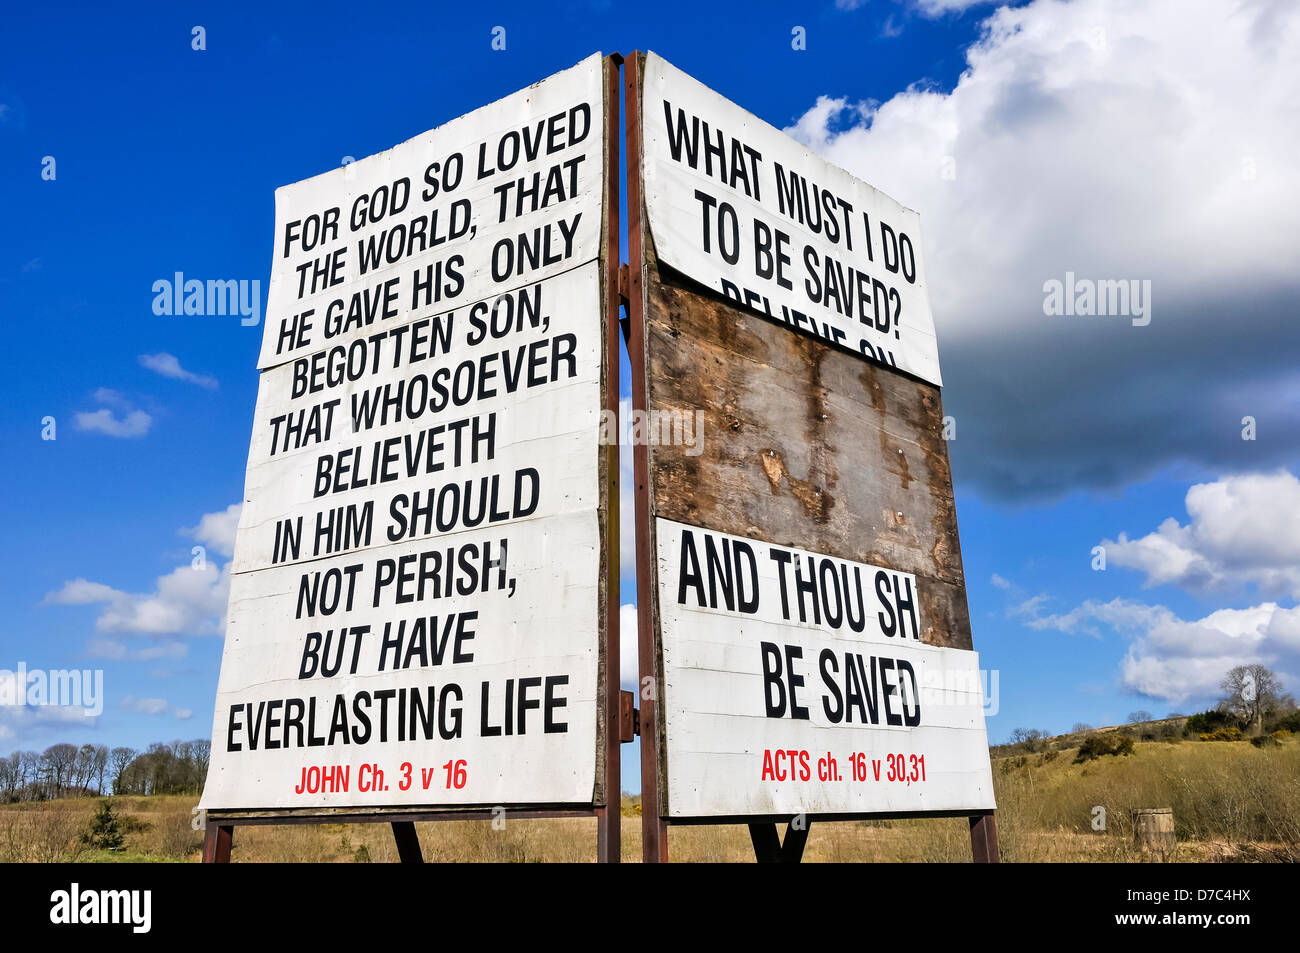 Religious sign typical of many erected in rural Protestant areas of Northern Ireland. - Stock Image